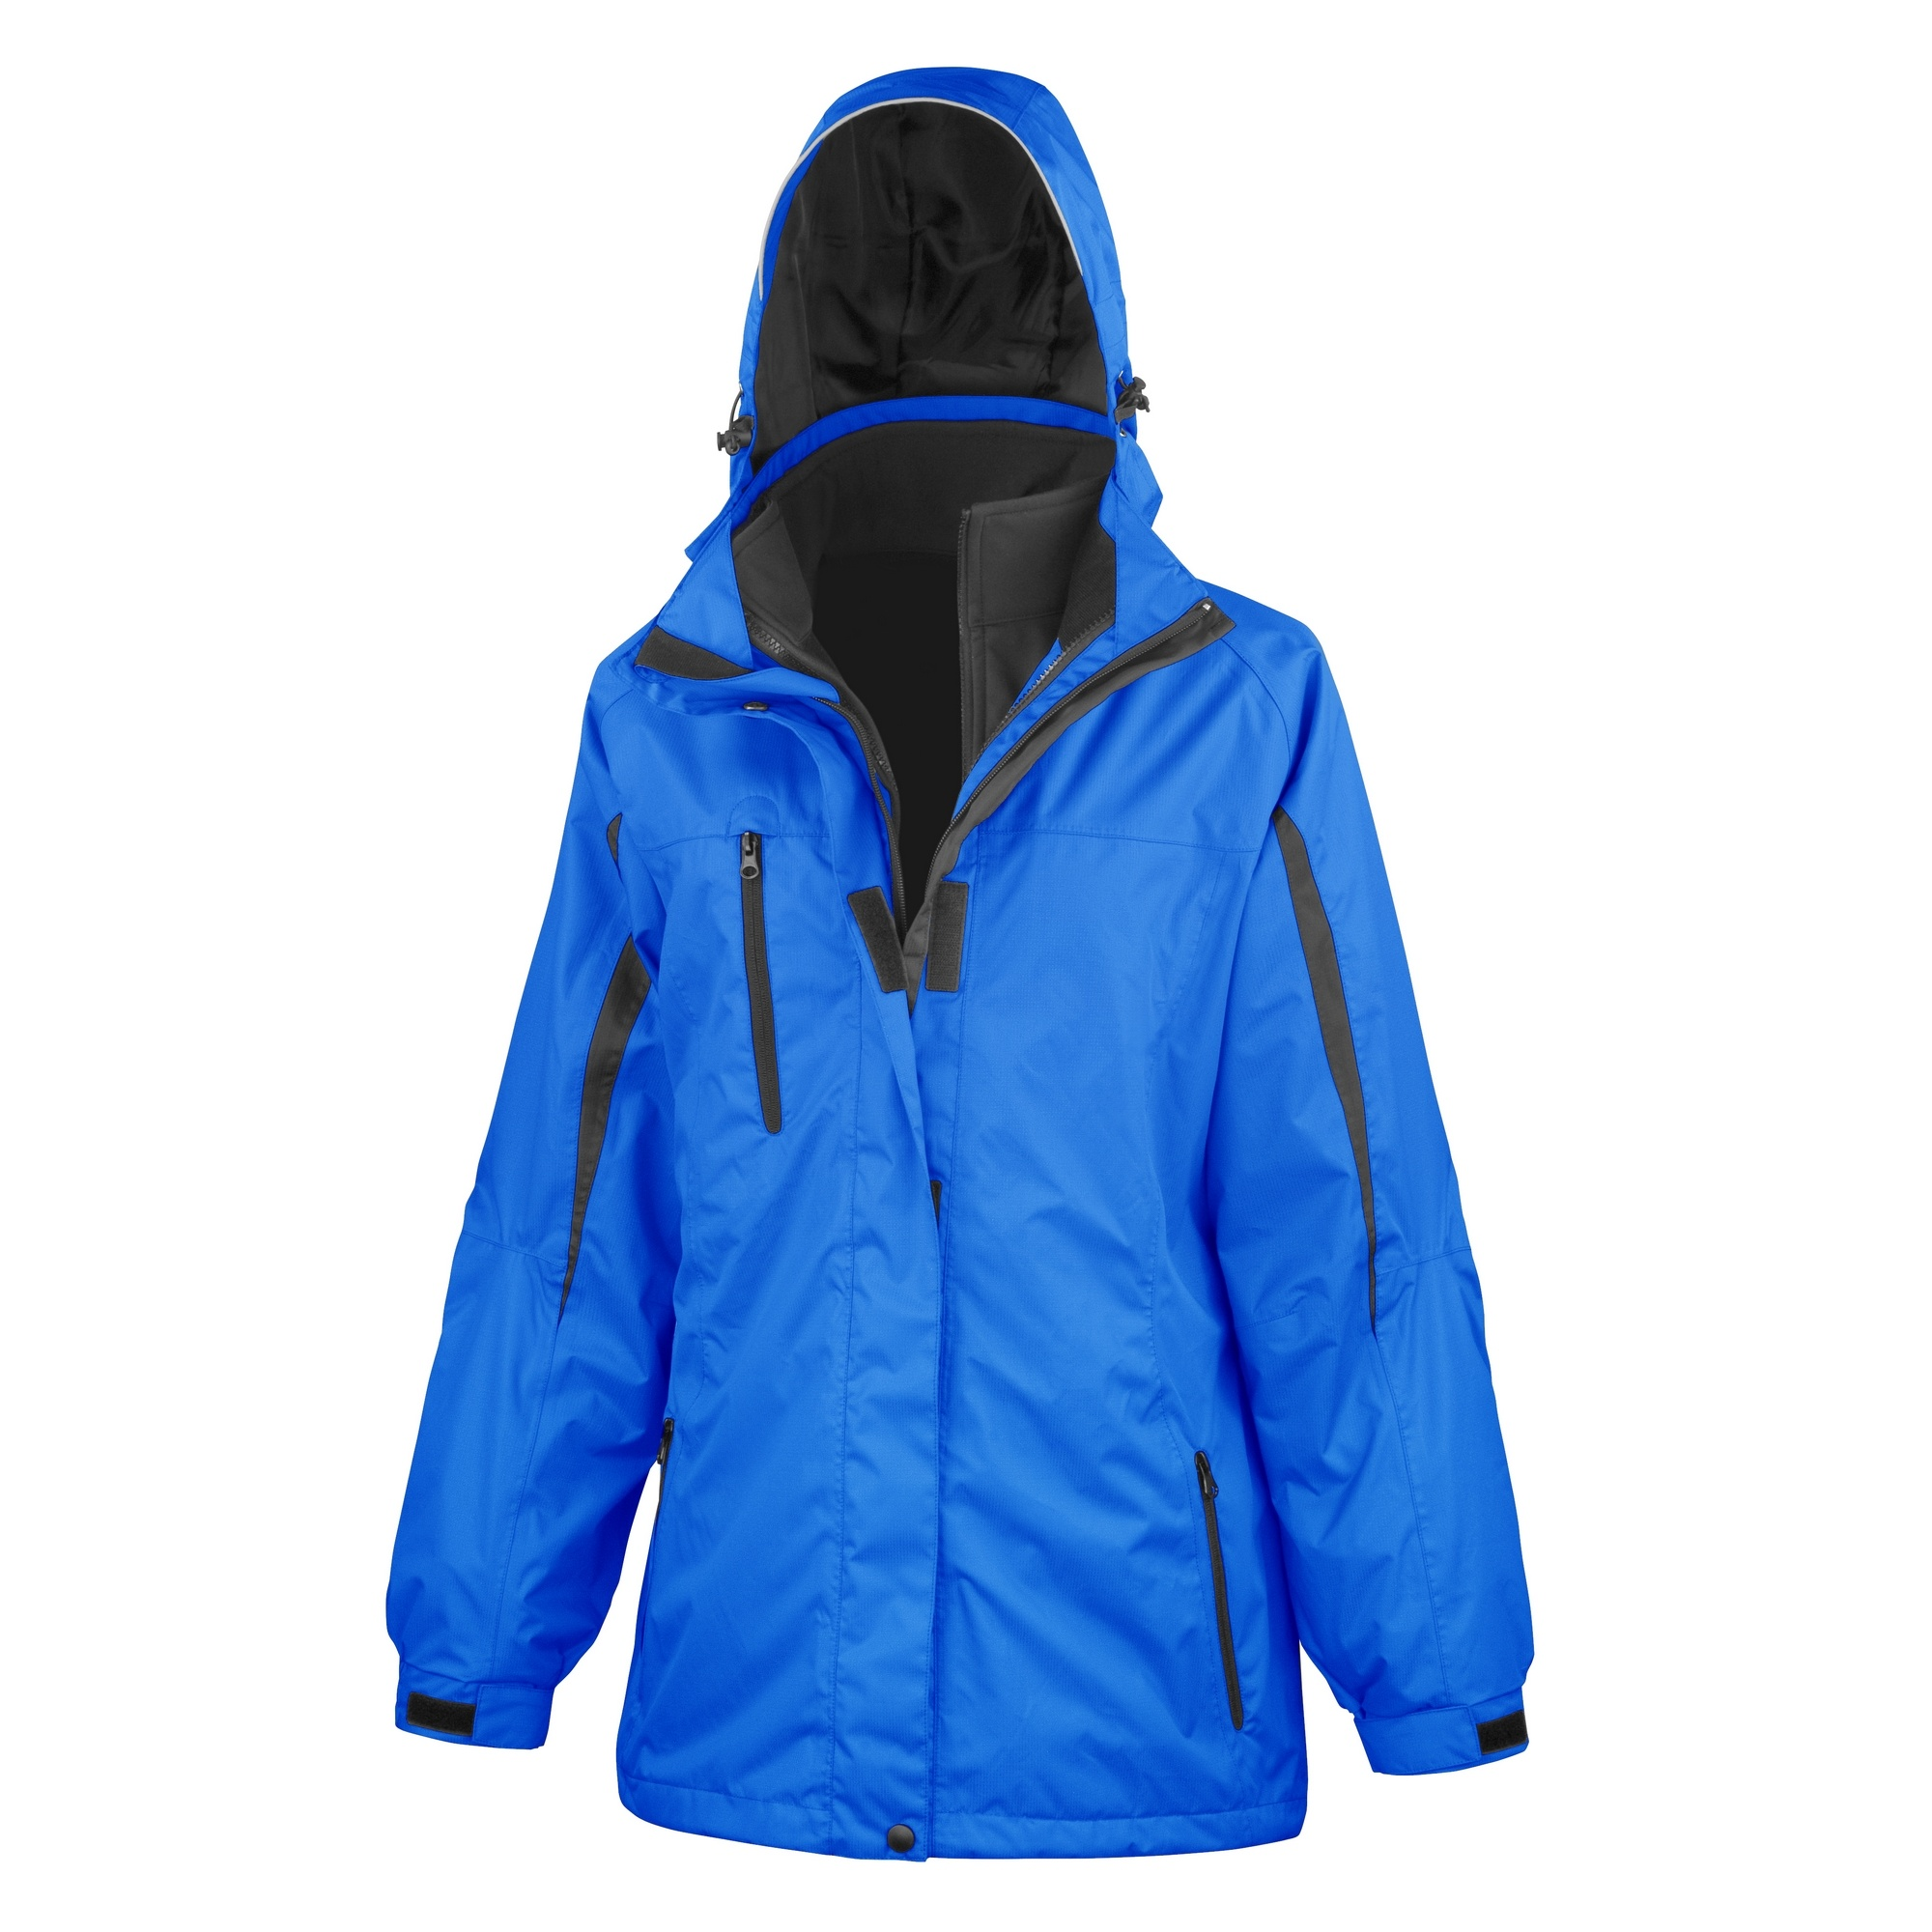 Result Womens/Ladies 3 In 1 Softshell Journey Jacket With Hood (XL) (Royal / Black)